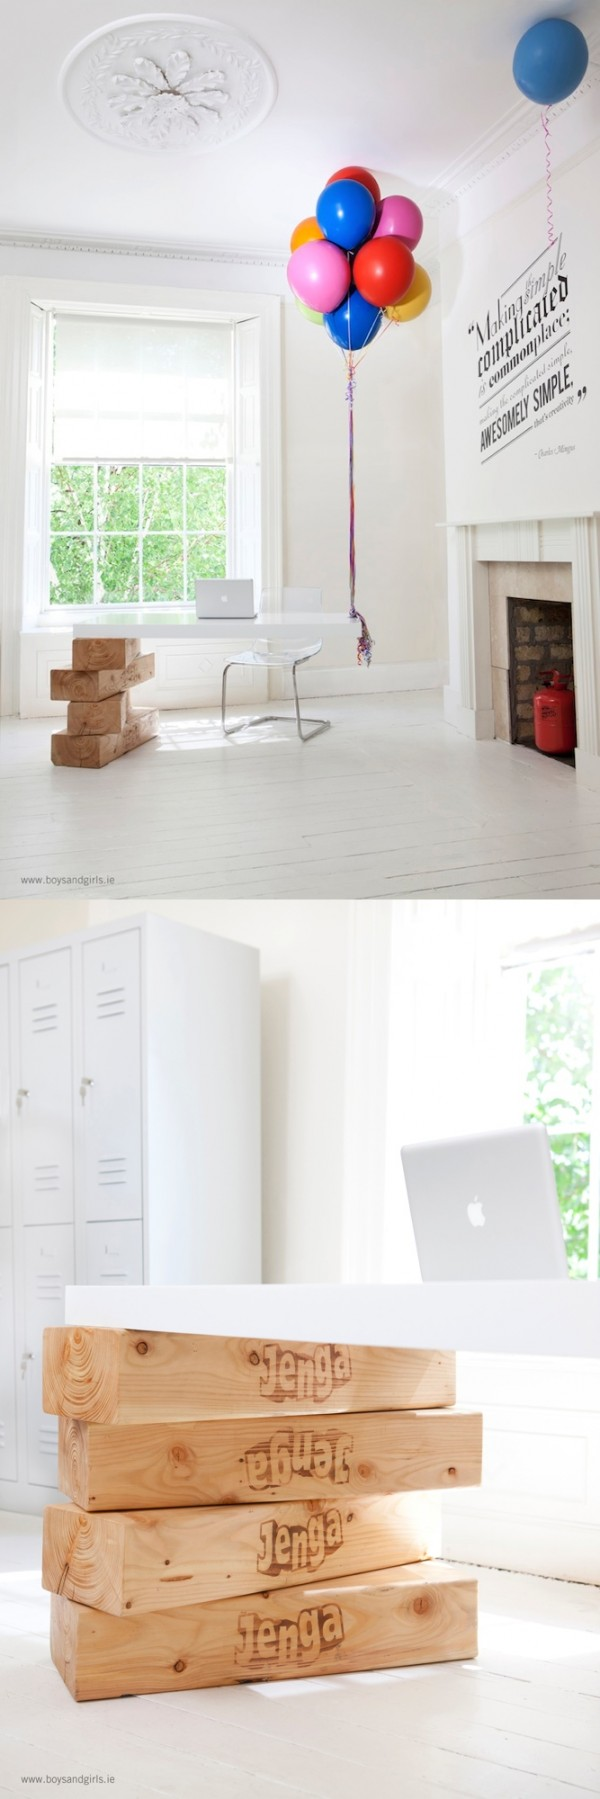 24-Jenga-block-desk-600x1799.jpeg